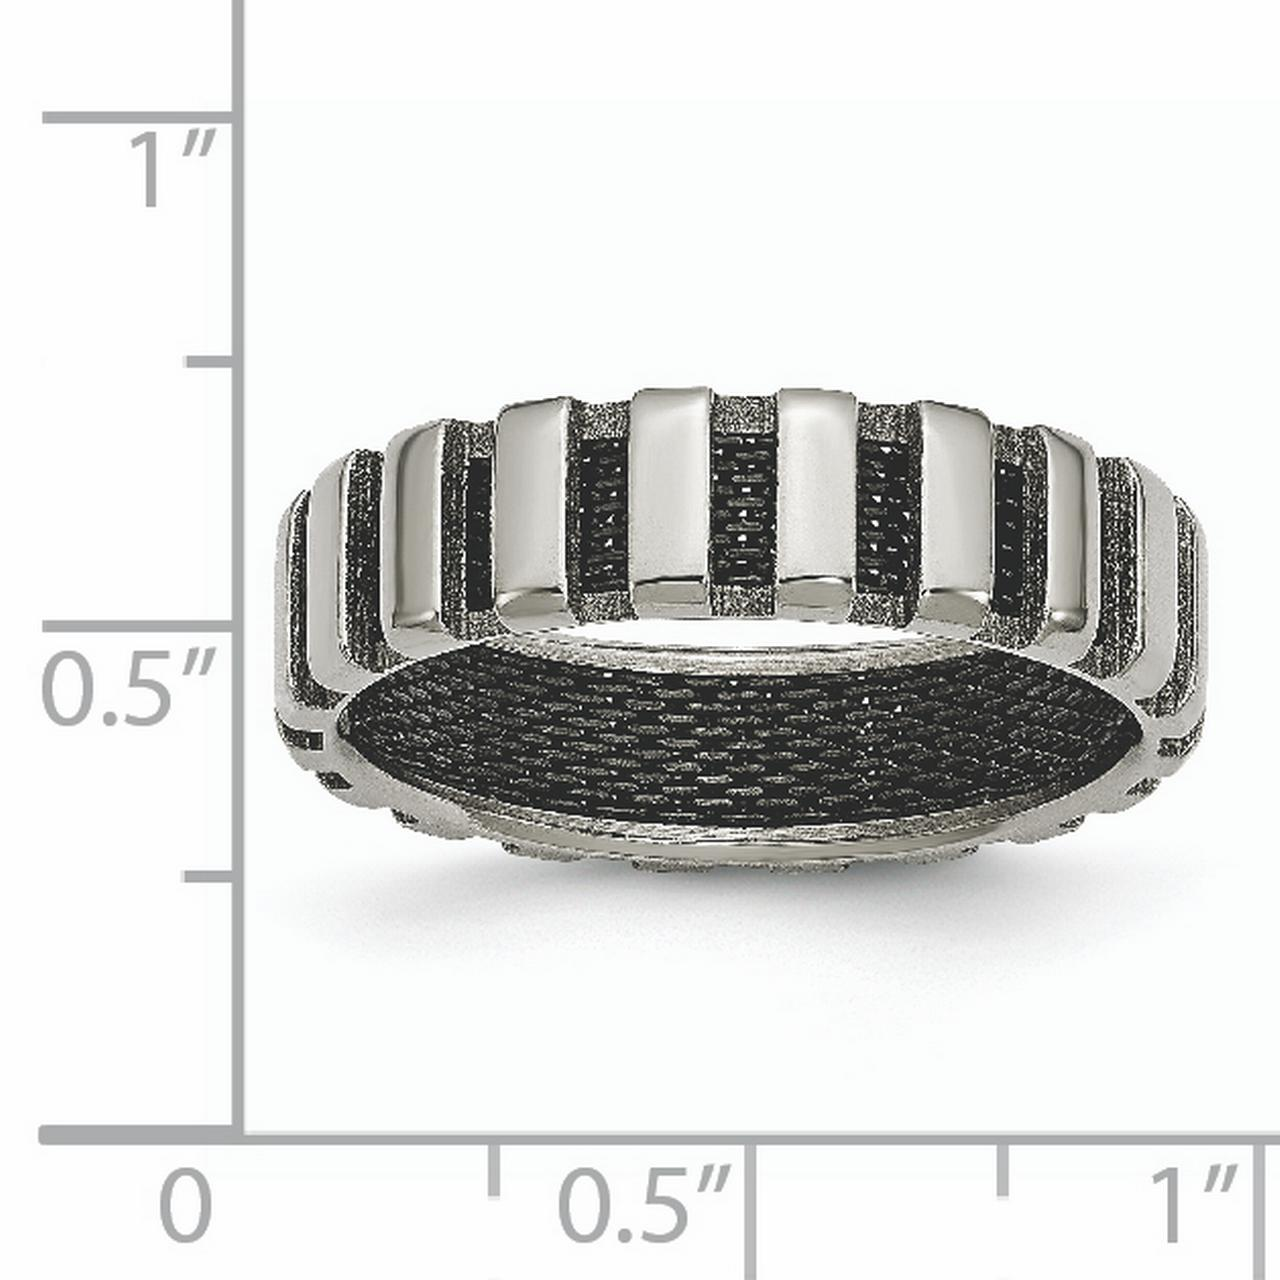 Titanium Black Plated Wire 6mm Wedding Ring Band Size 7.00 Fancy Fashion Jewelry Gifts For Women For Her - image 5 of 6